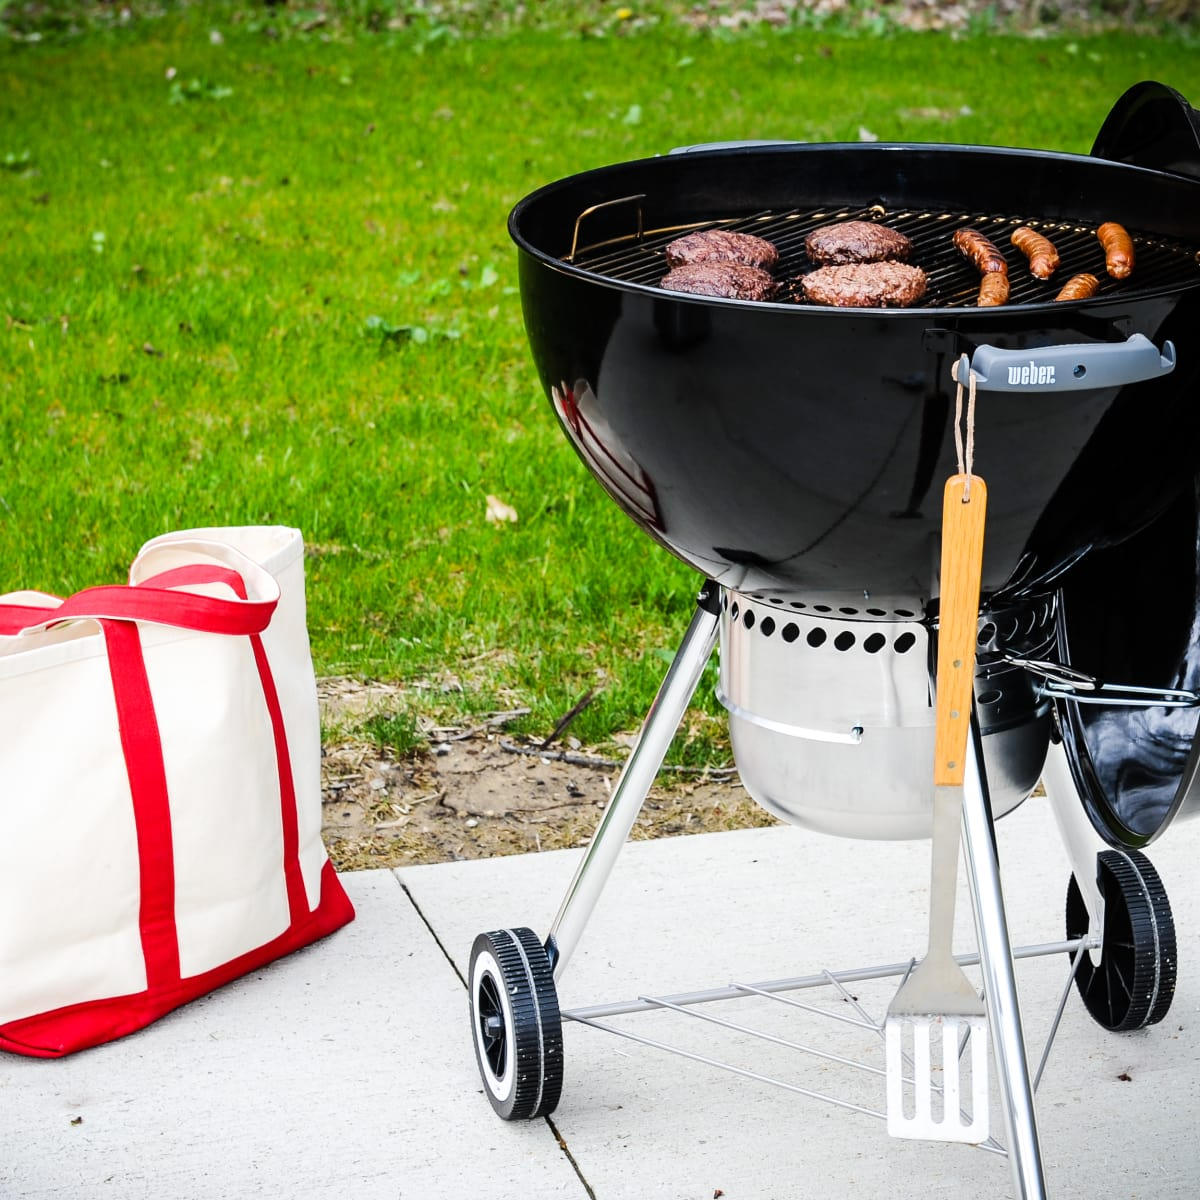 Best Charcoal Grill 2019 The Best Charcoal Grills of 2019   Reviewed Home & Outdoors